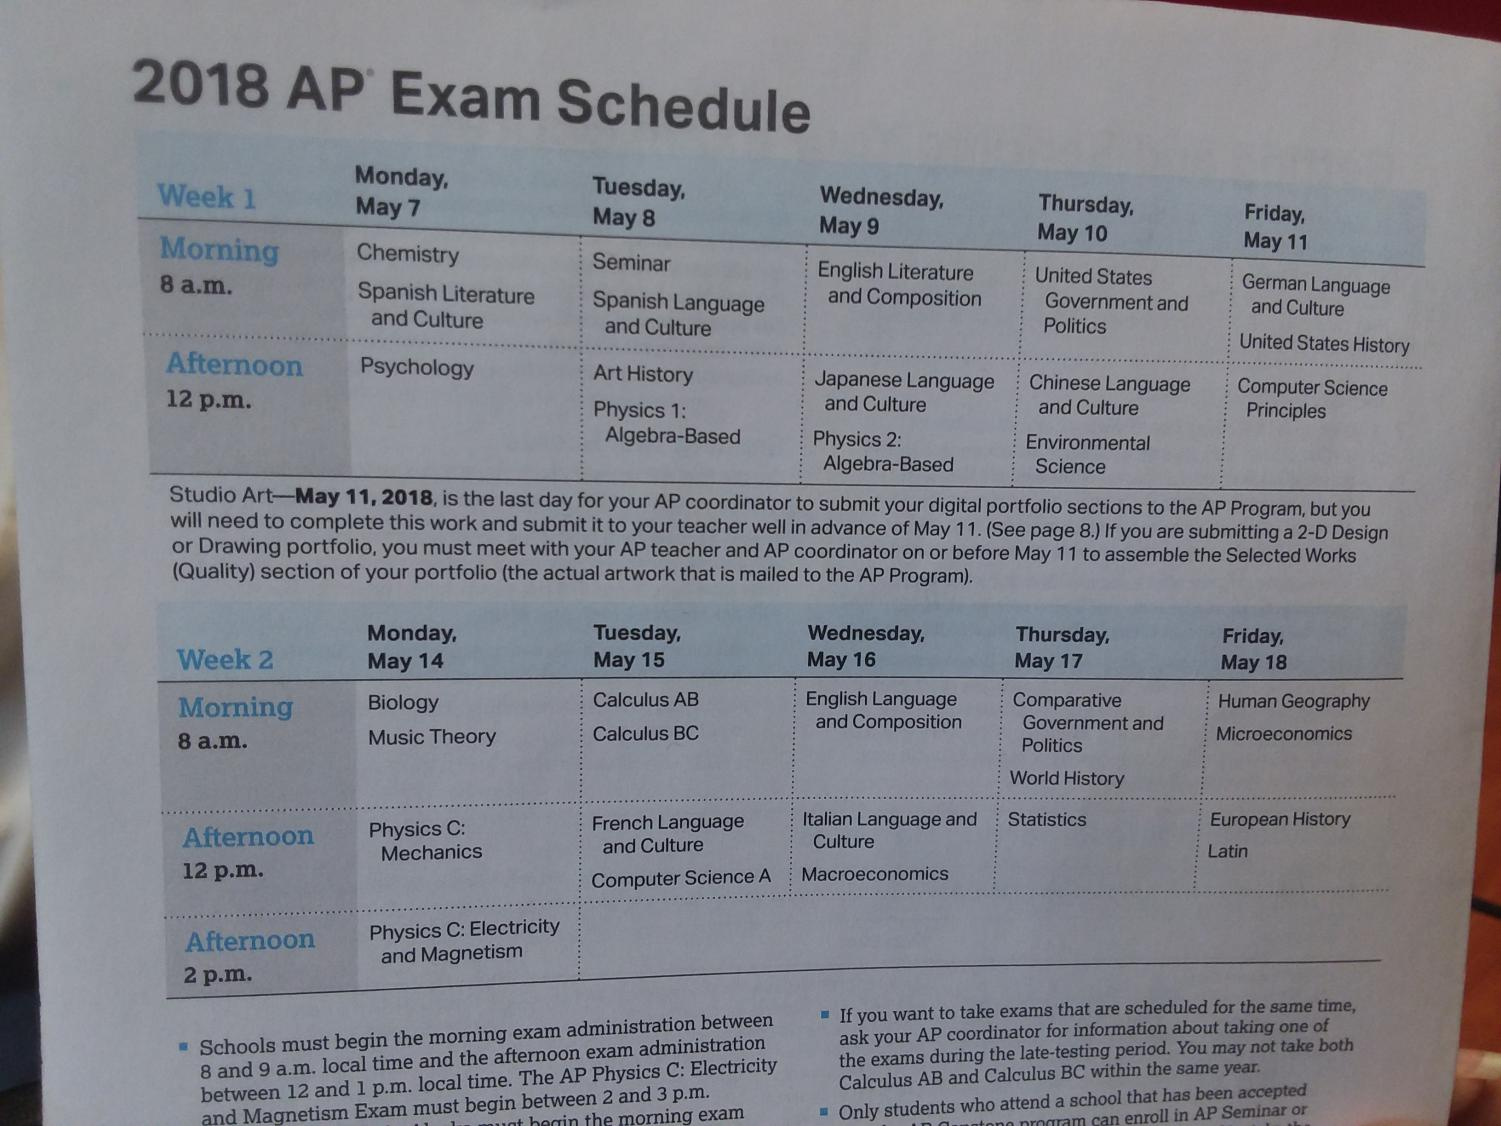 The 2018 AP Exam Schedule.